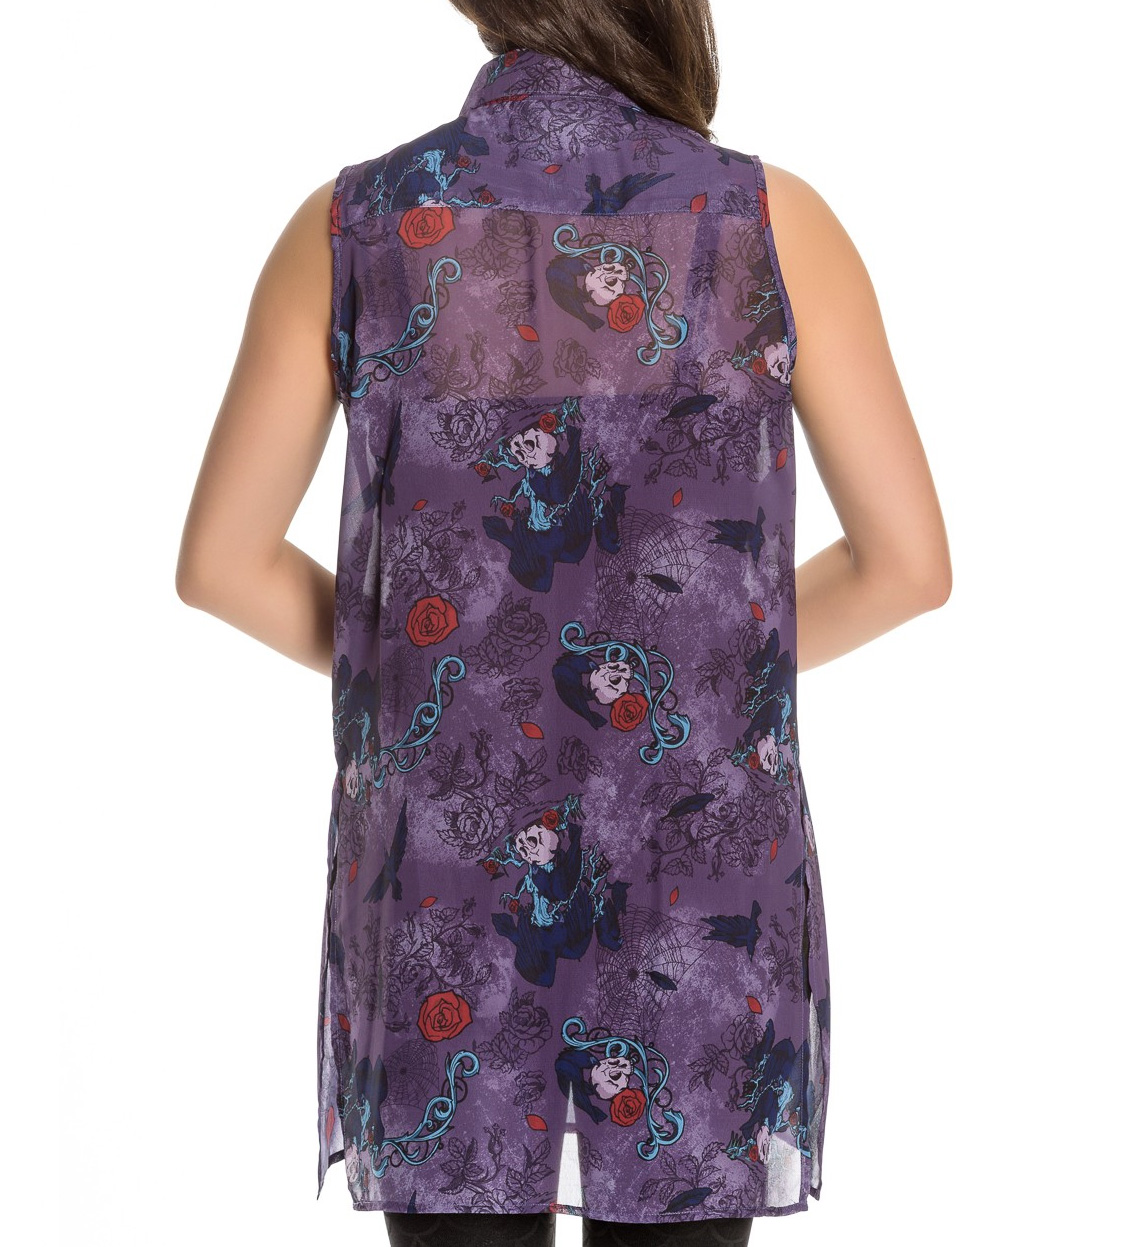 Hell-Bunny-Shirt-Top-Goth-Punk-Roses-Skulls-RAVEN-Purple-Blouse-All-Sizes thumbnail 9